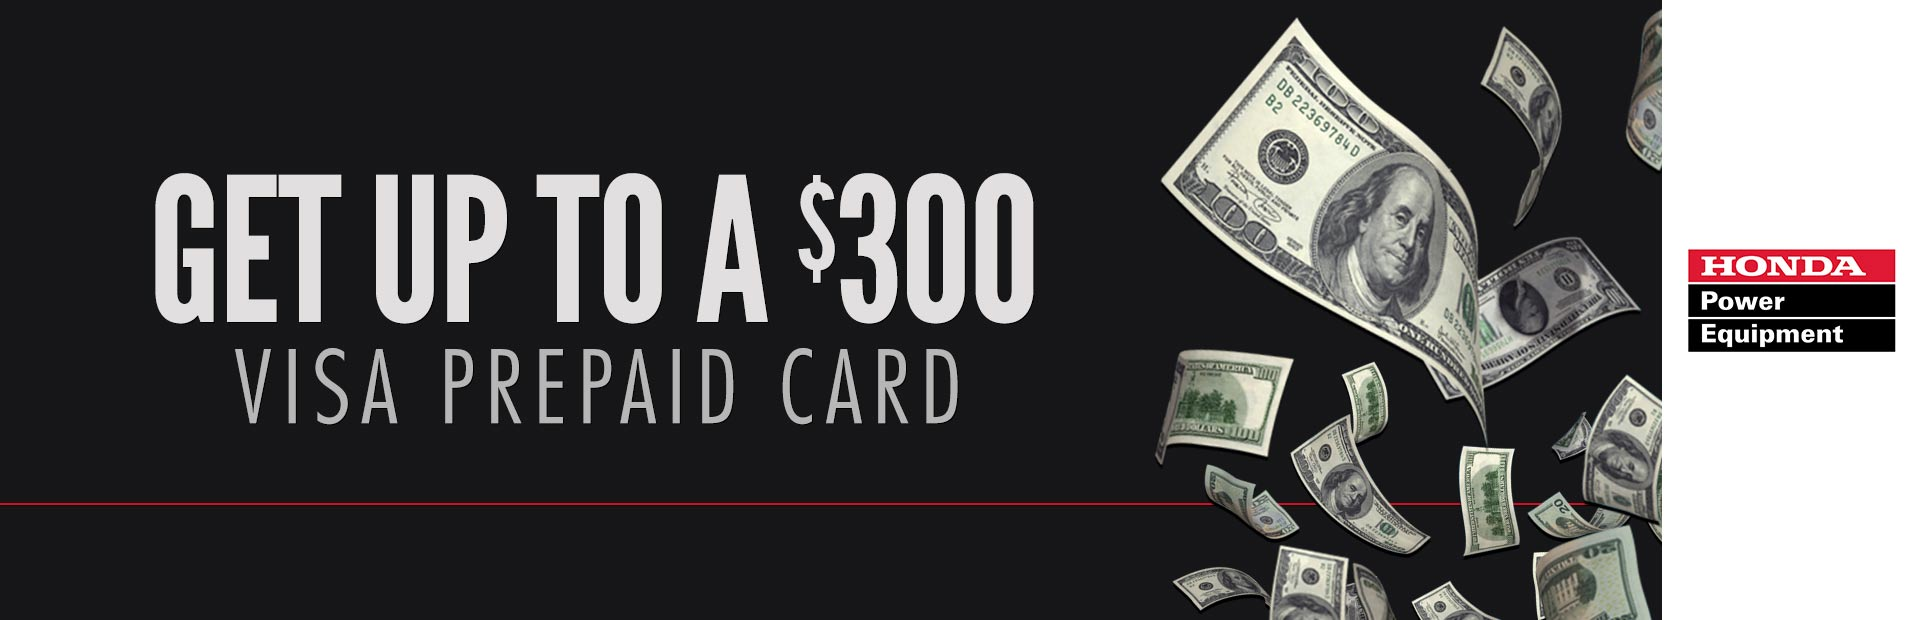 Honda Power Equipment: Get Up To A $300 Visa Prepaid Card